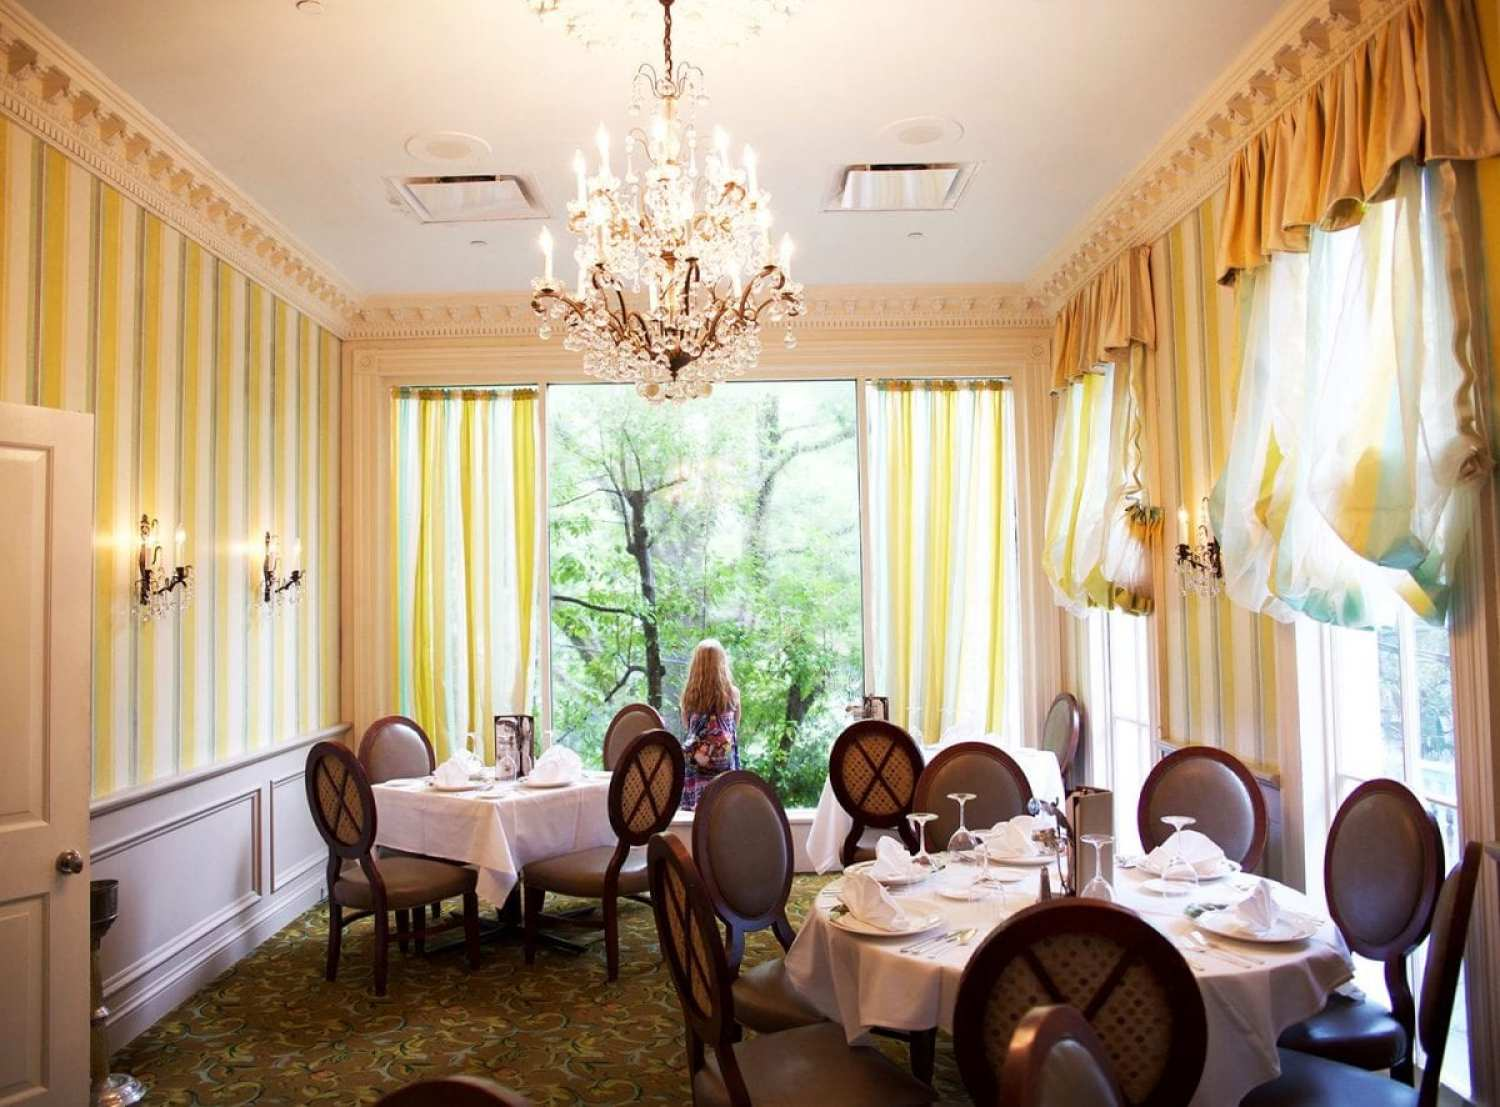 Places to eat in New Orleans - commanders palace